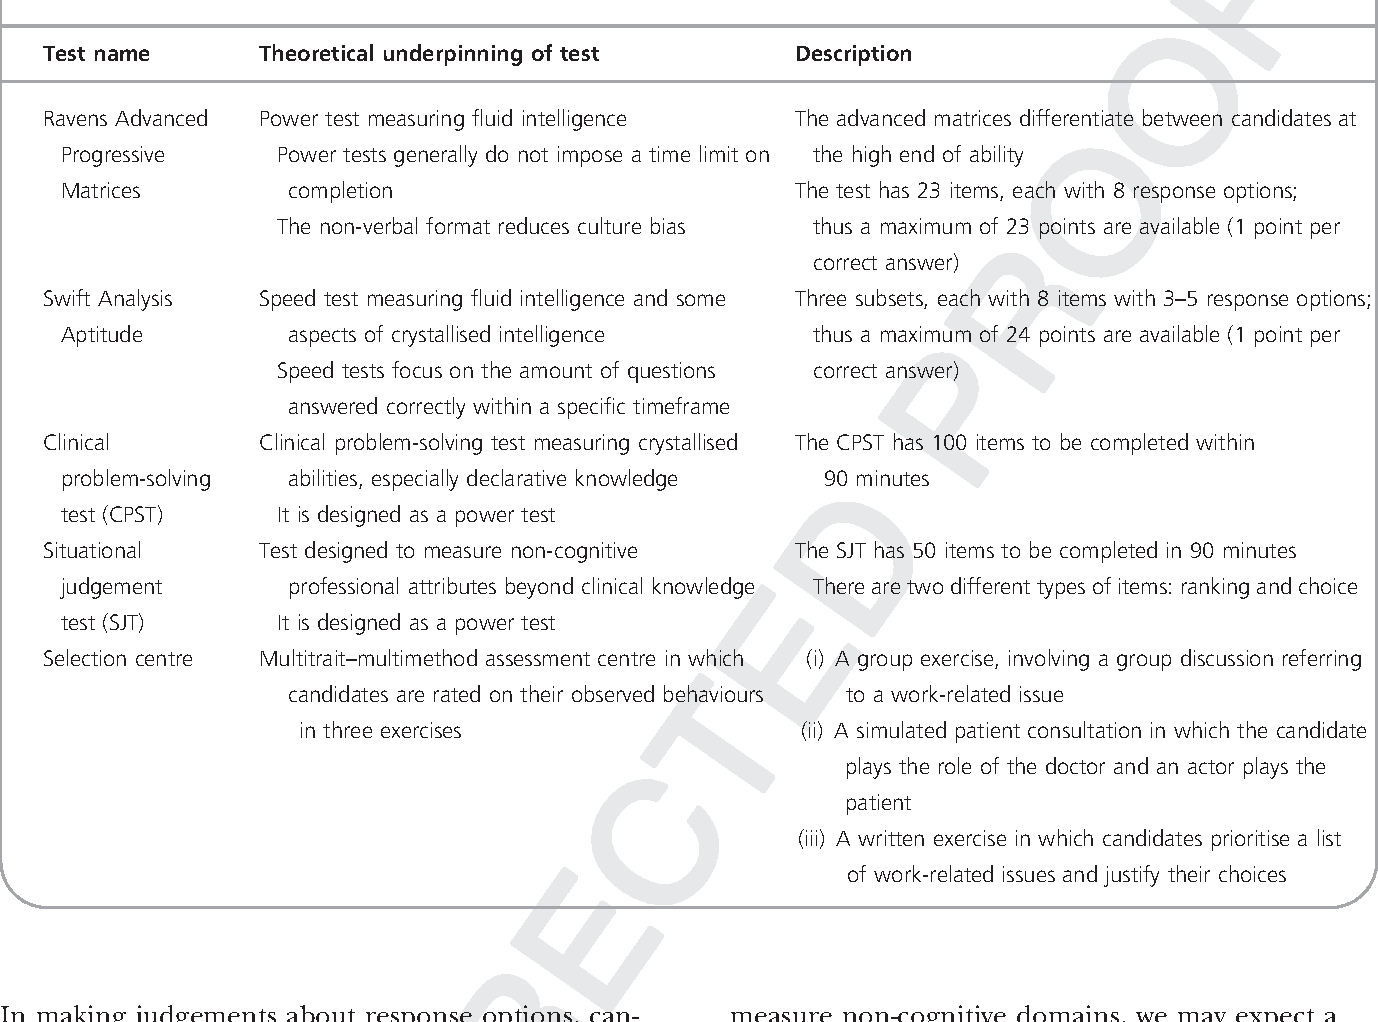 Table 1 from Evaluating cognitive ability, knowledge tests